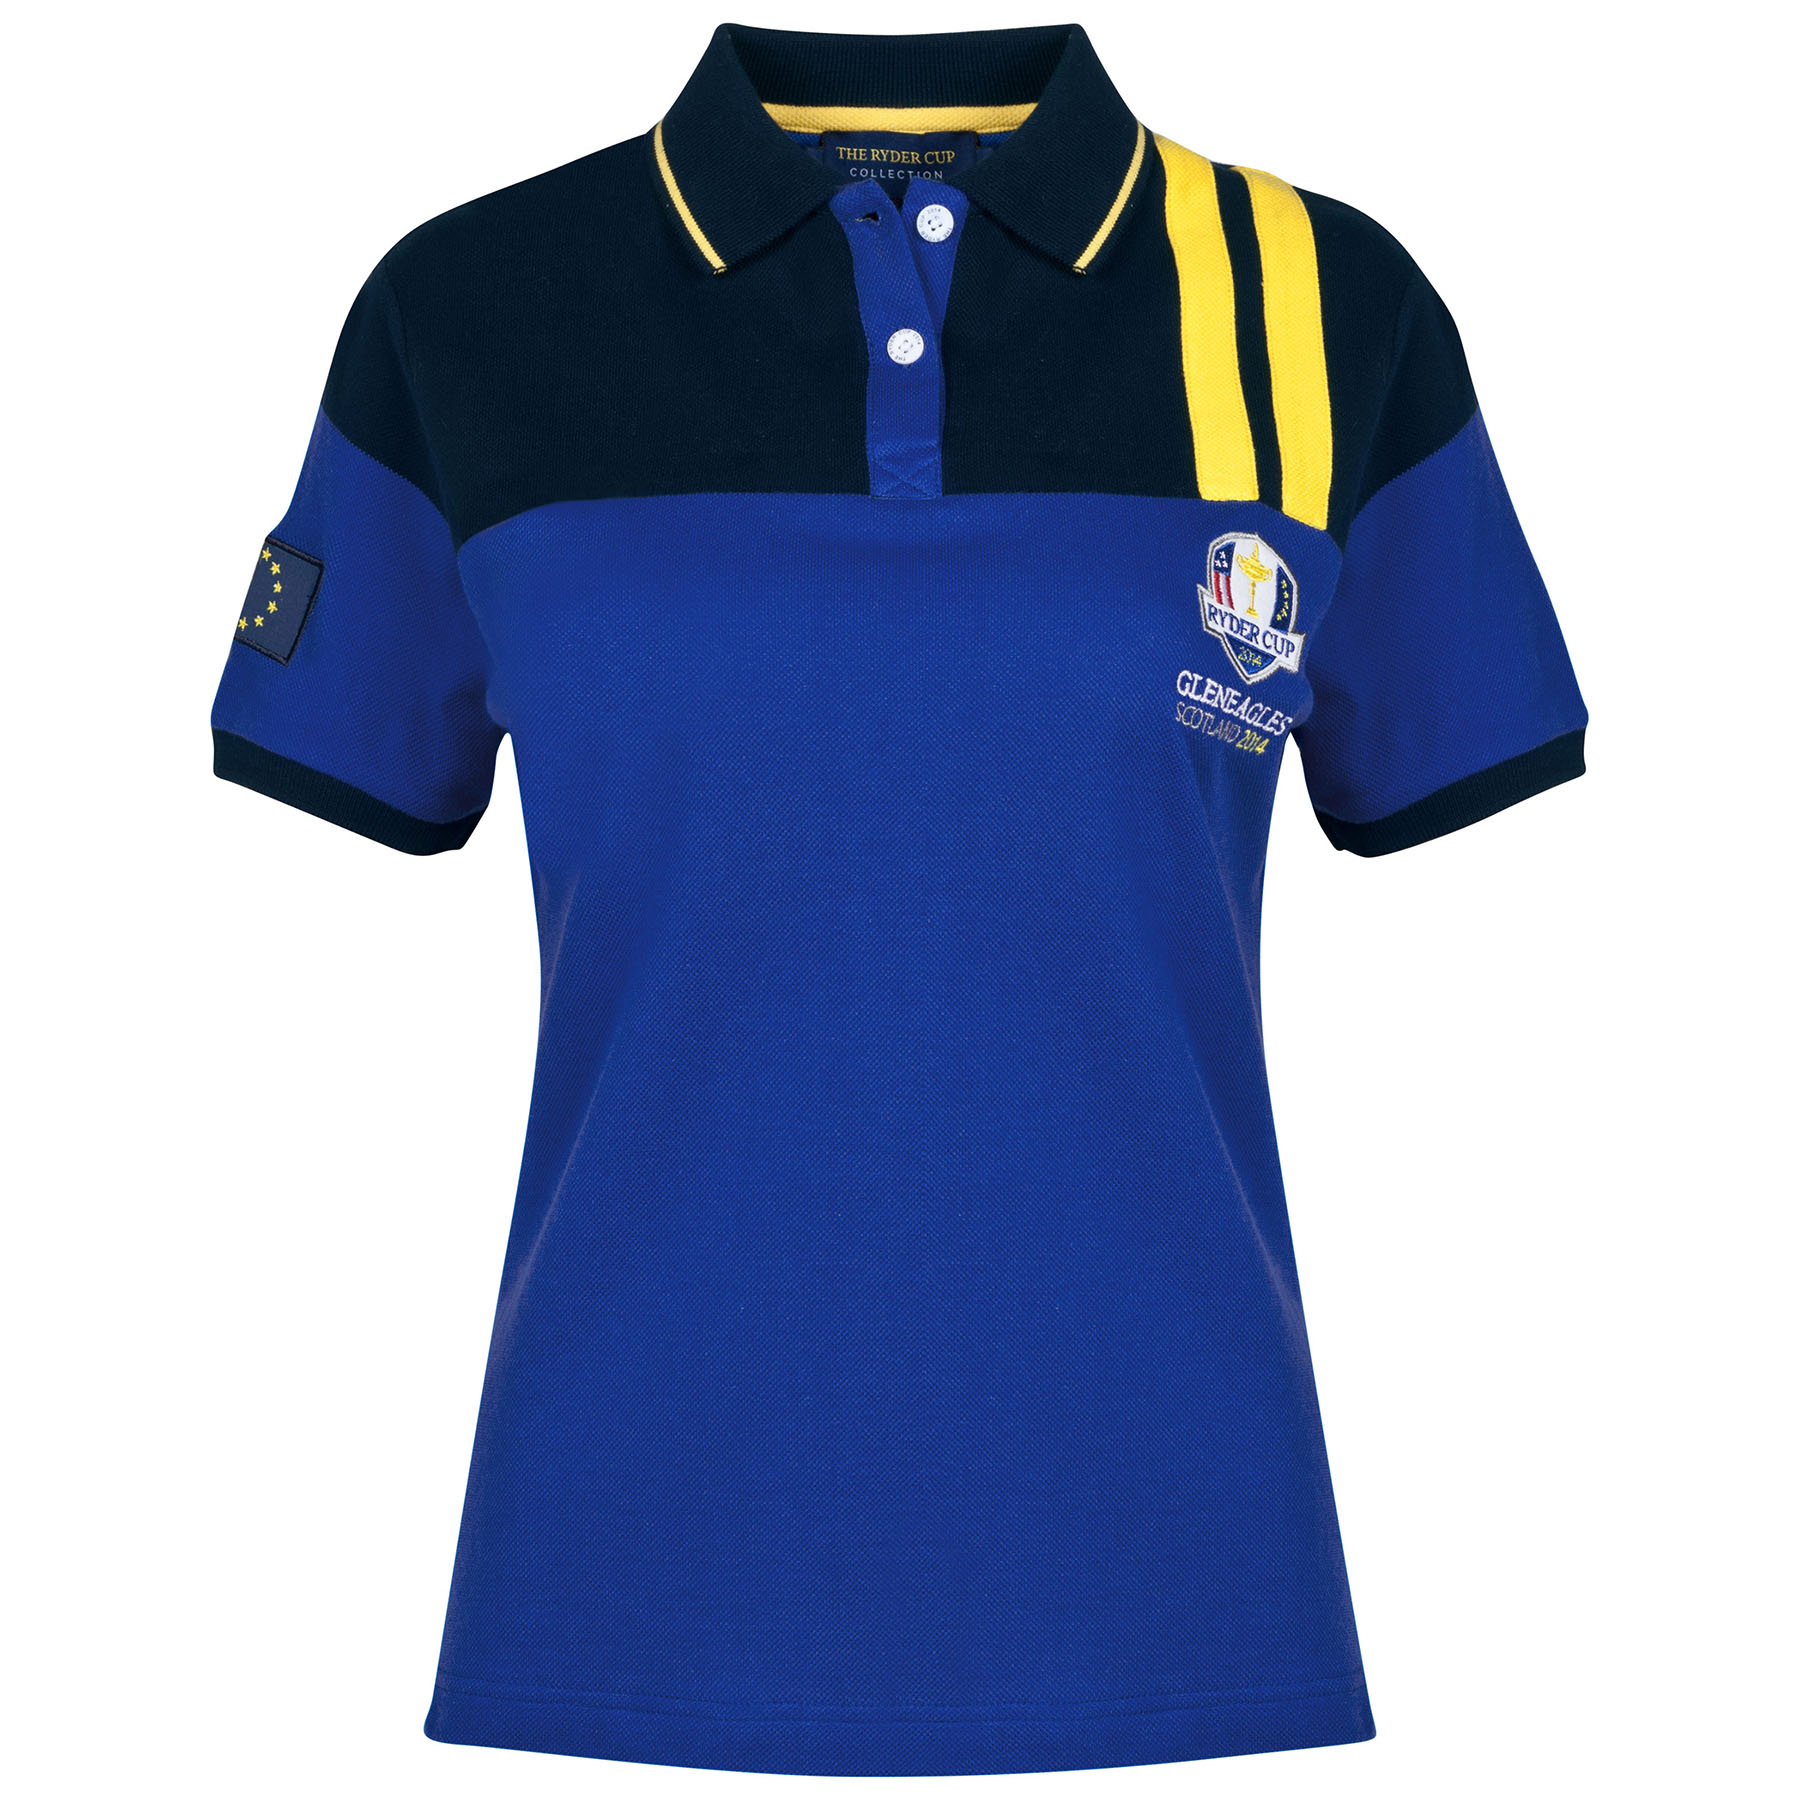 The 2014 Ryder Cup Fan Range Polo - Womens